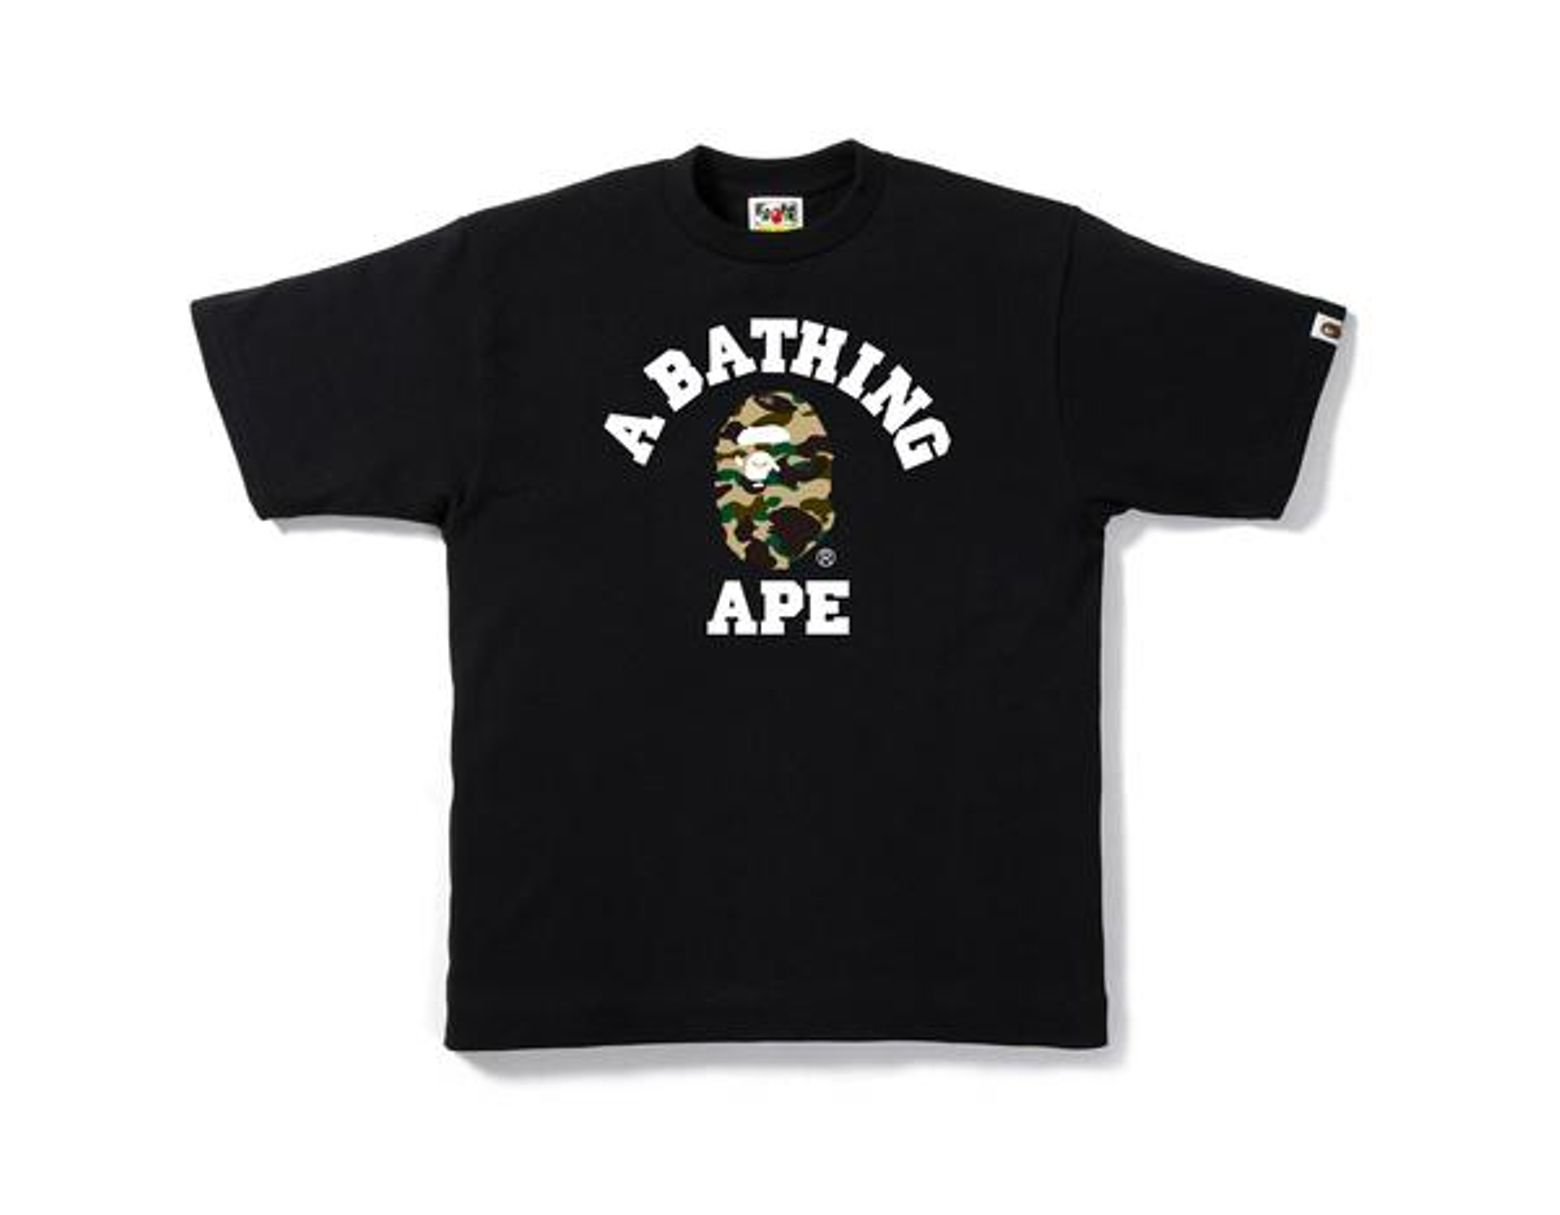 661dc4dd A Bathing Ape 1st Camo College Tee Black/yellow Camo in Black for ...